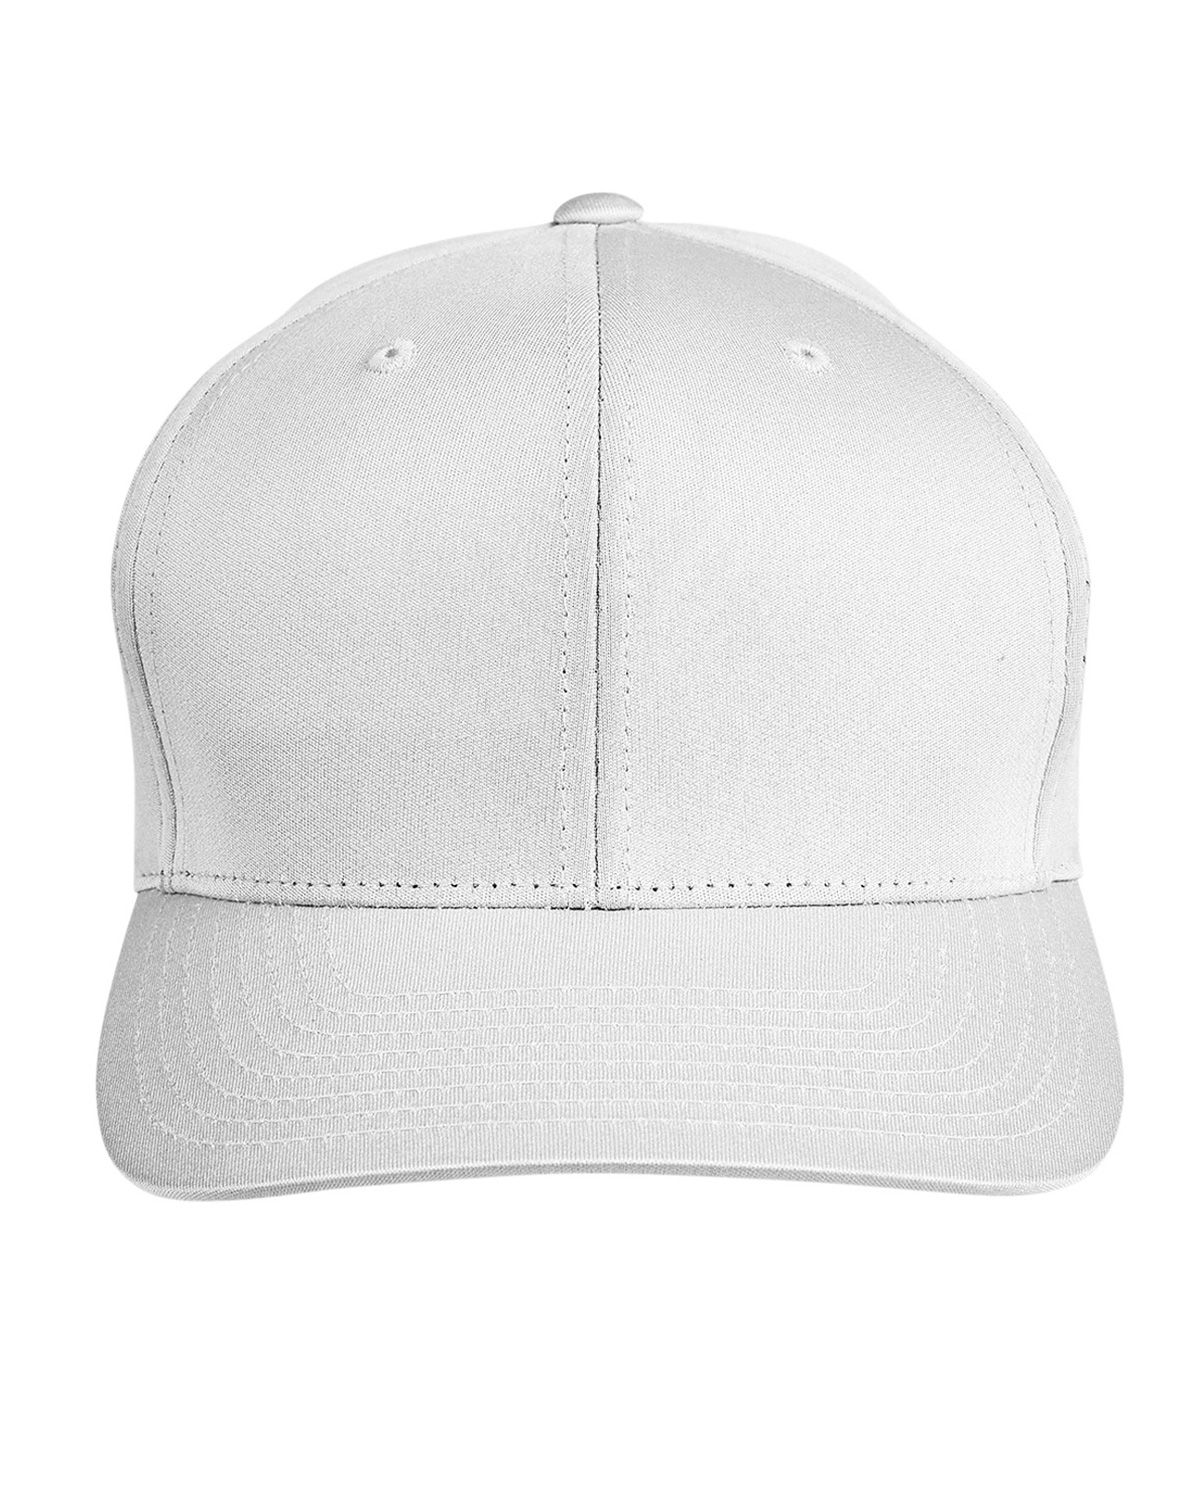 8bd857107 Team 365 TT801Y by Yupoong Youth Zone Performance Cap